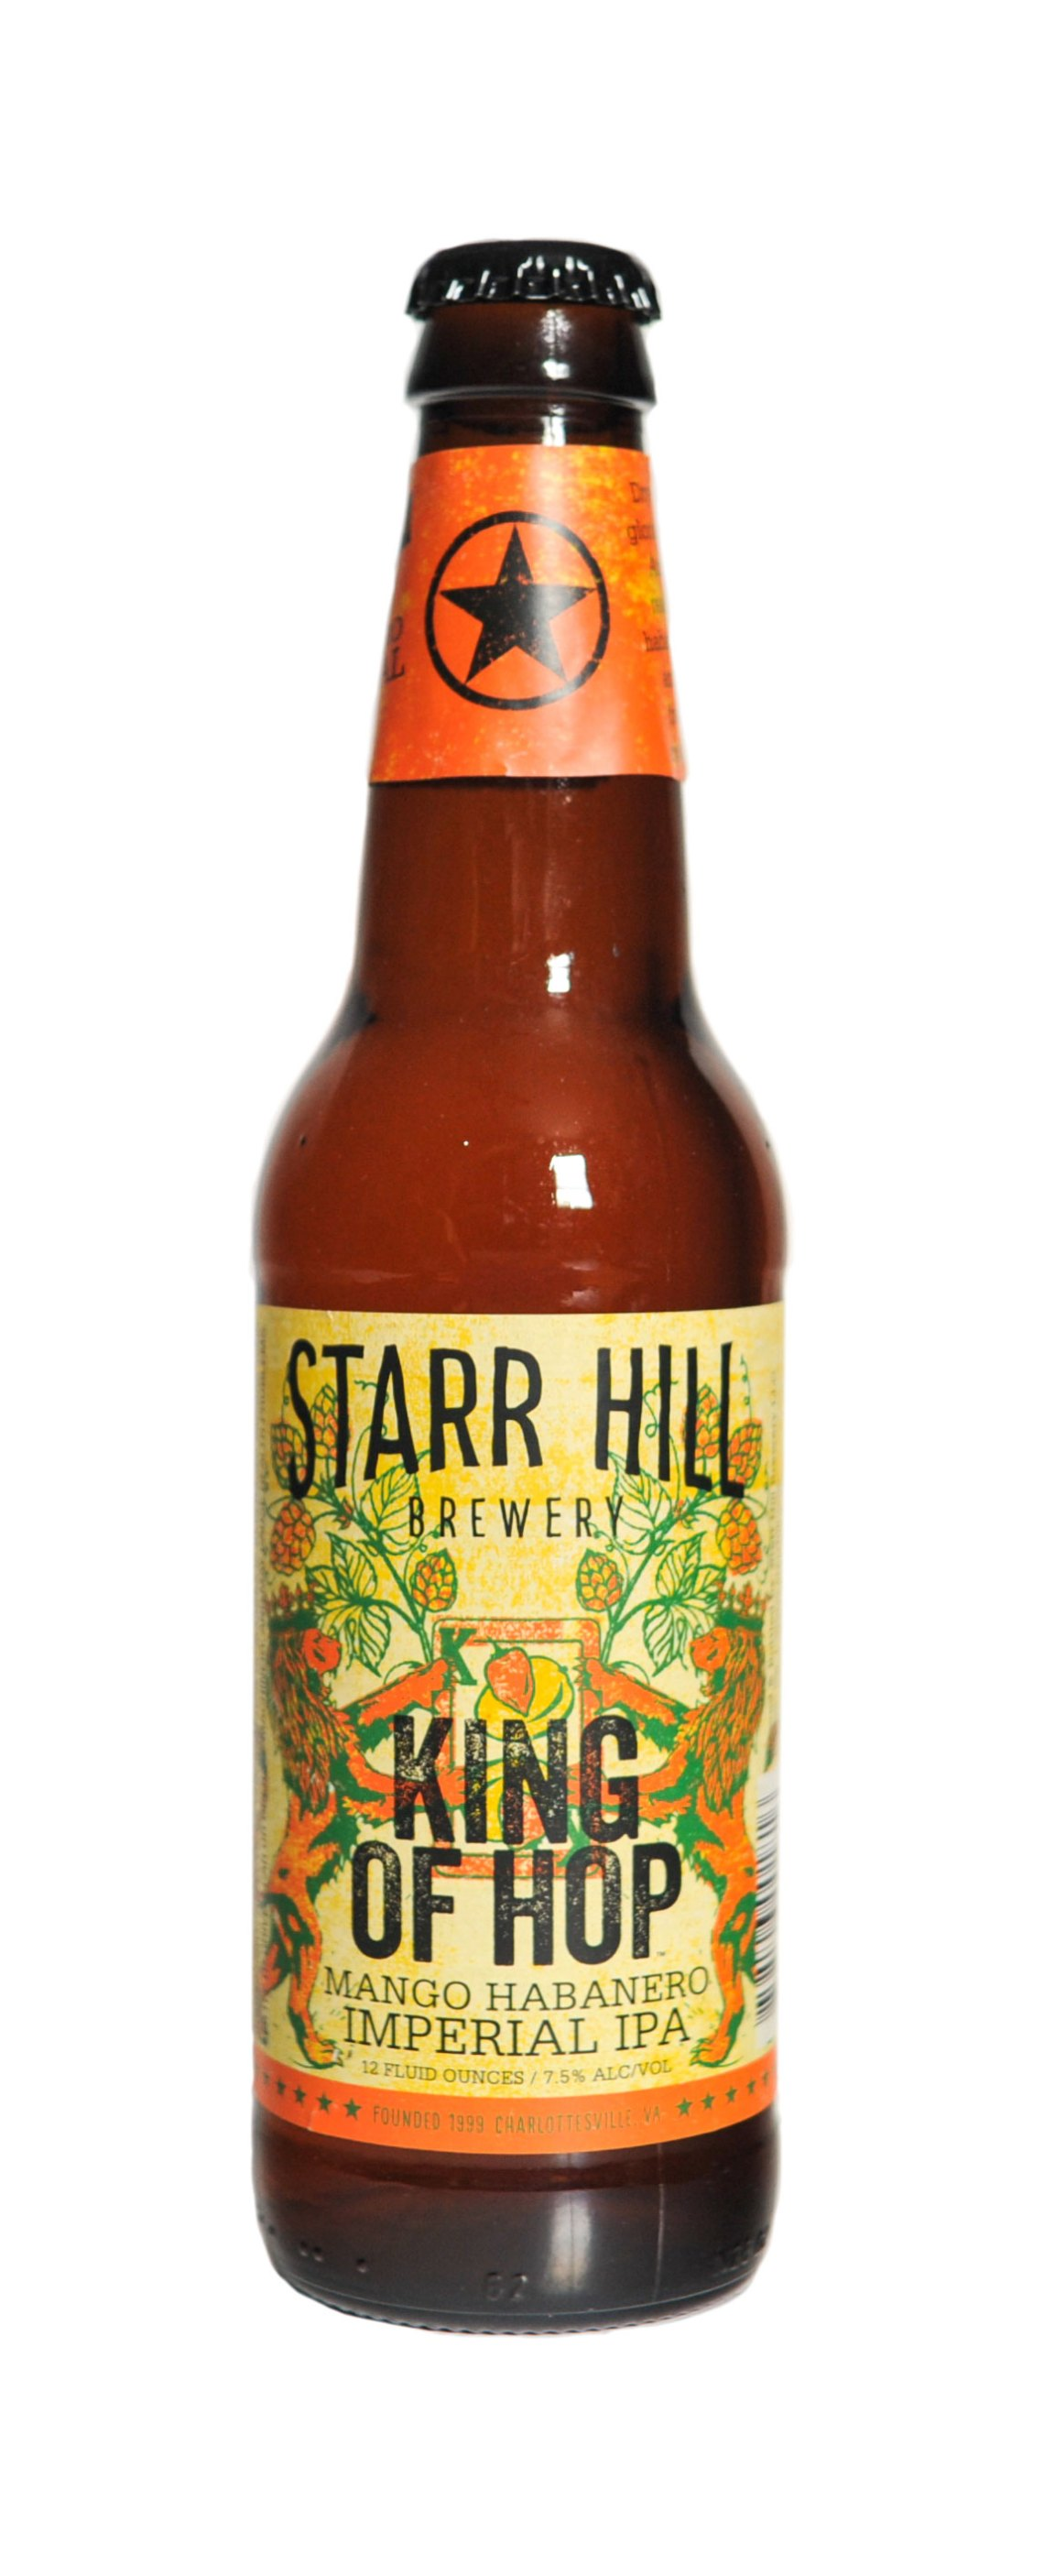 Starr Hill King of Hop Mango Habanero Imperial IPA